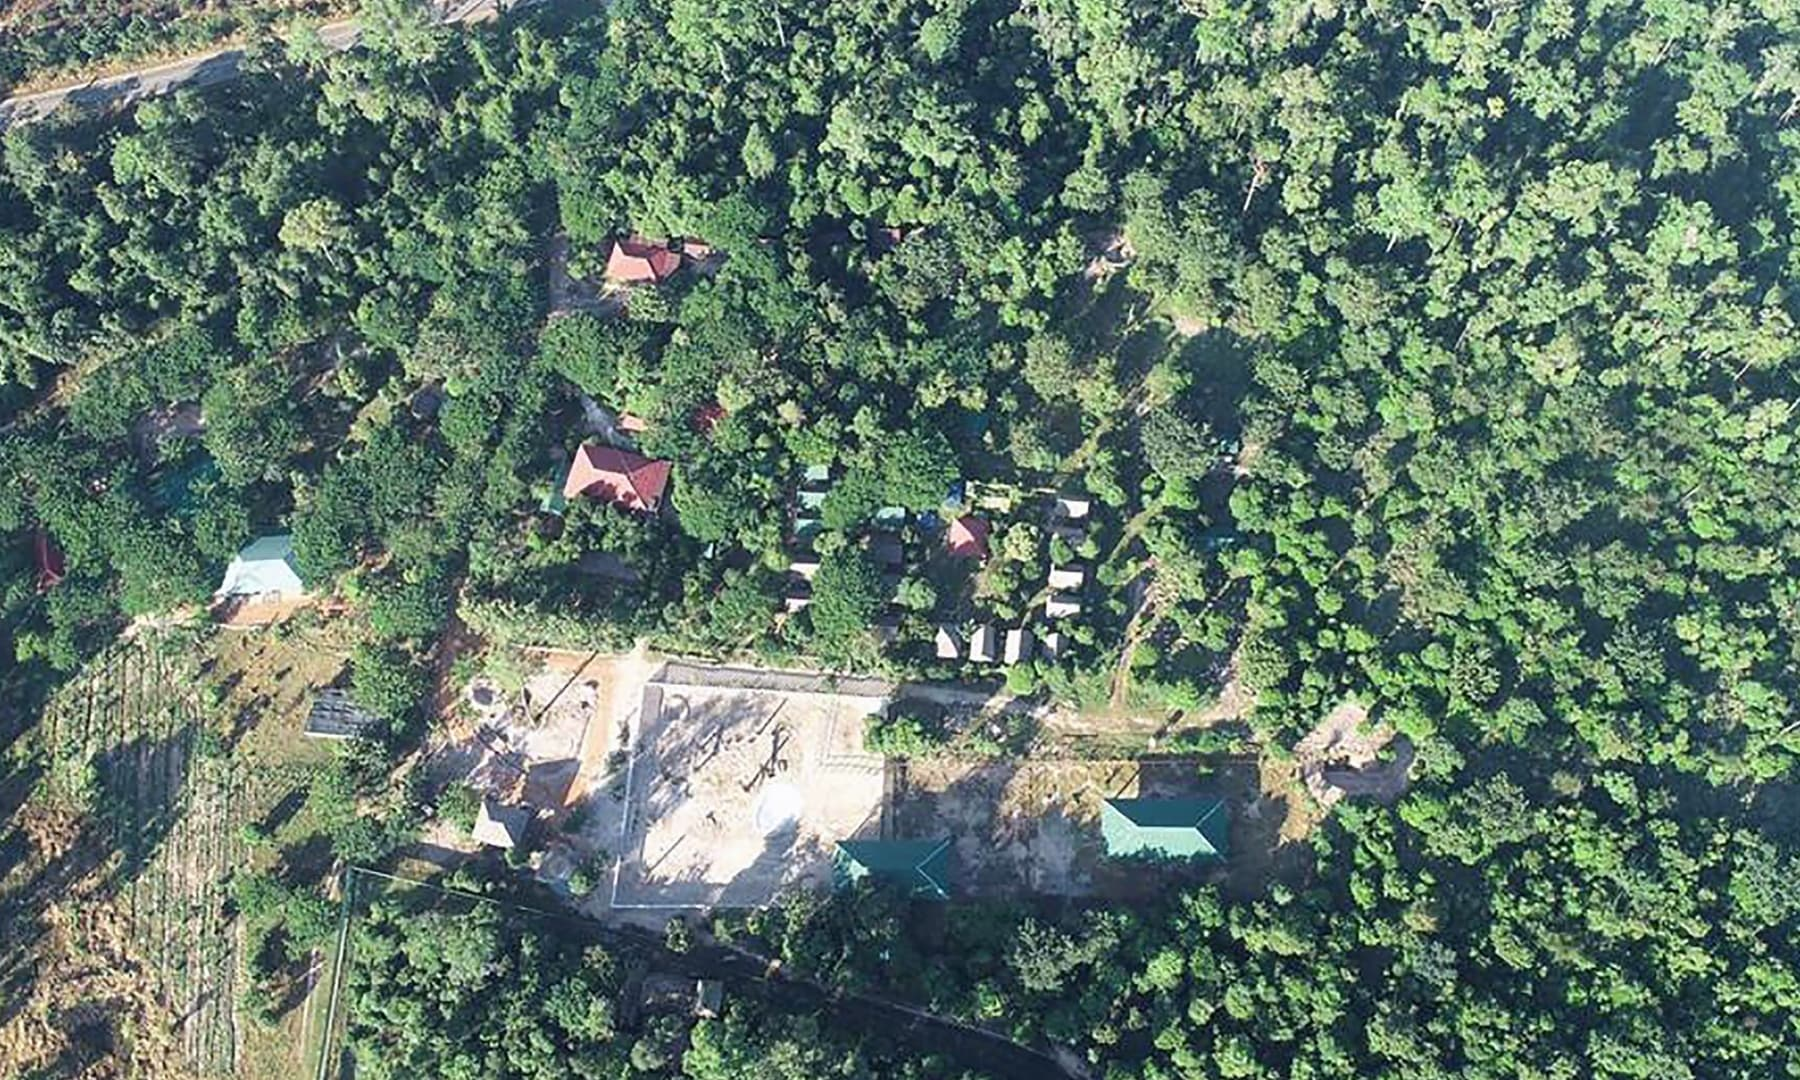 This undated aerial handout photo shows the under-construction enclosure for the Asian elephant Kaavan at the Kulen Prom Tep Wildlife Sanctuary in Oddar Meanchey province in Cambodia. — AFP/Cambodian Ministry of Environment